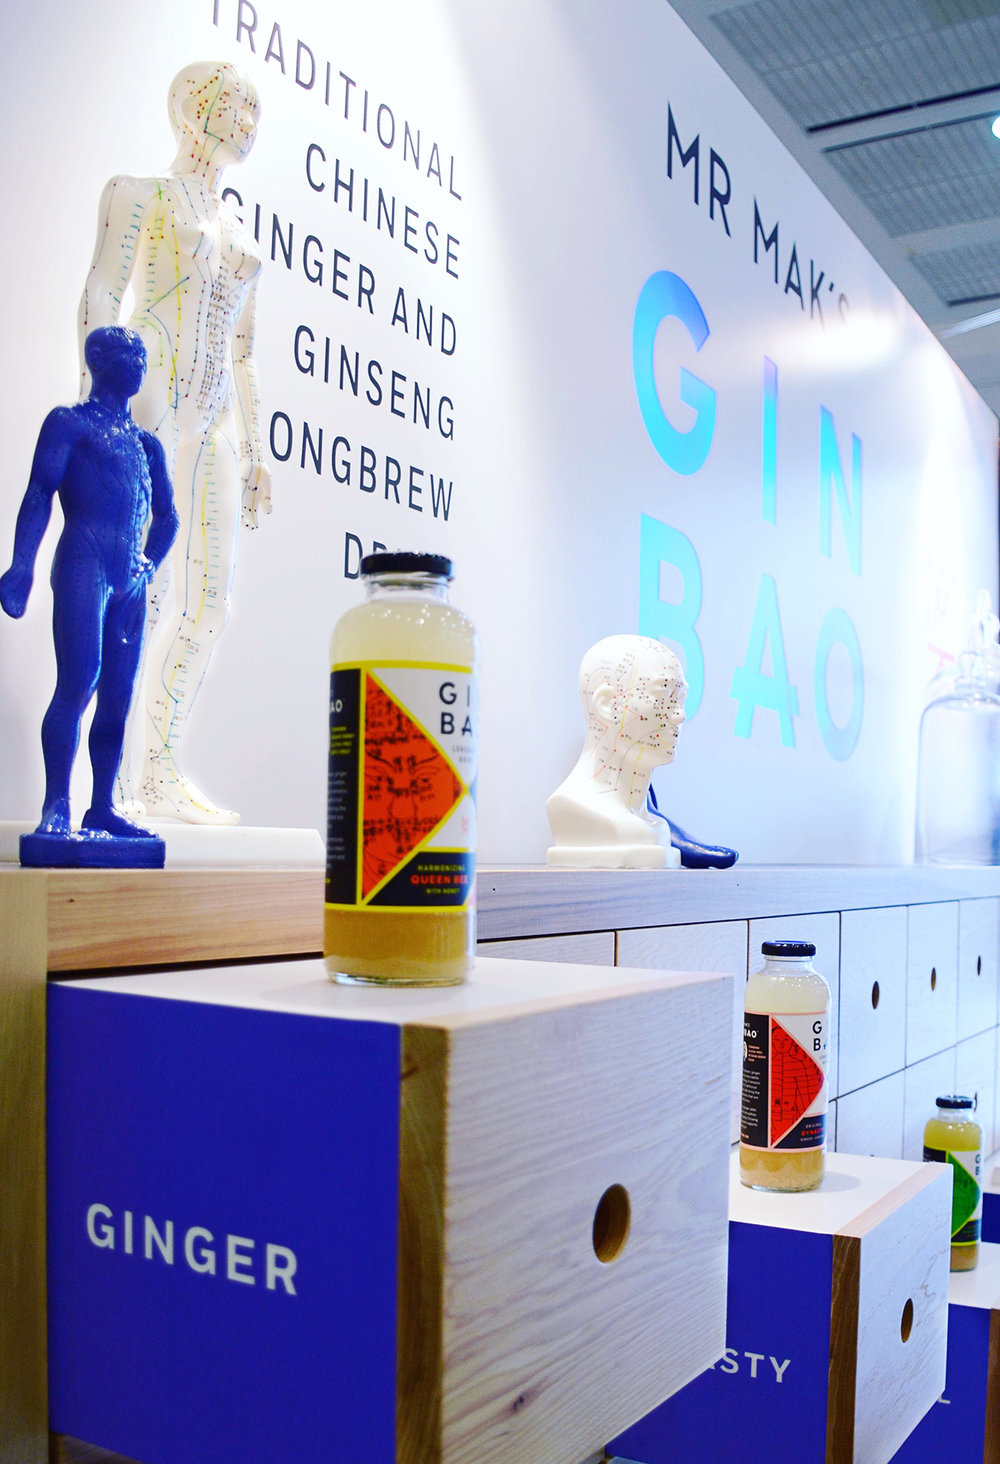 Mr. Mak's trade show booth inspired by Chinatown apothecary. Designed by Abby Haddican at Werner Design Werks.